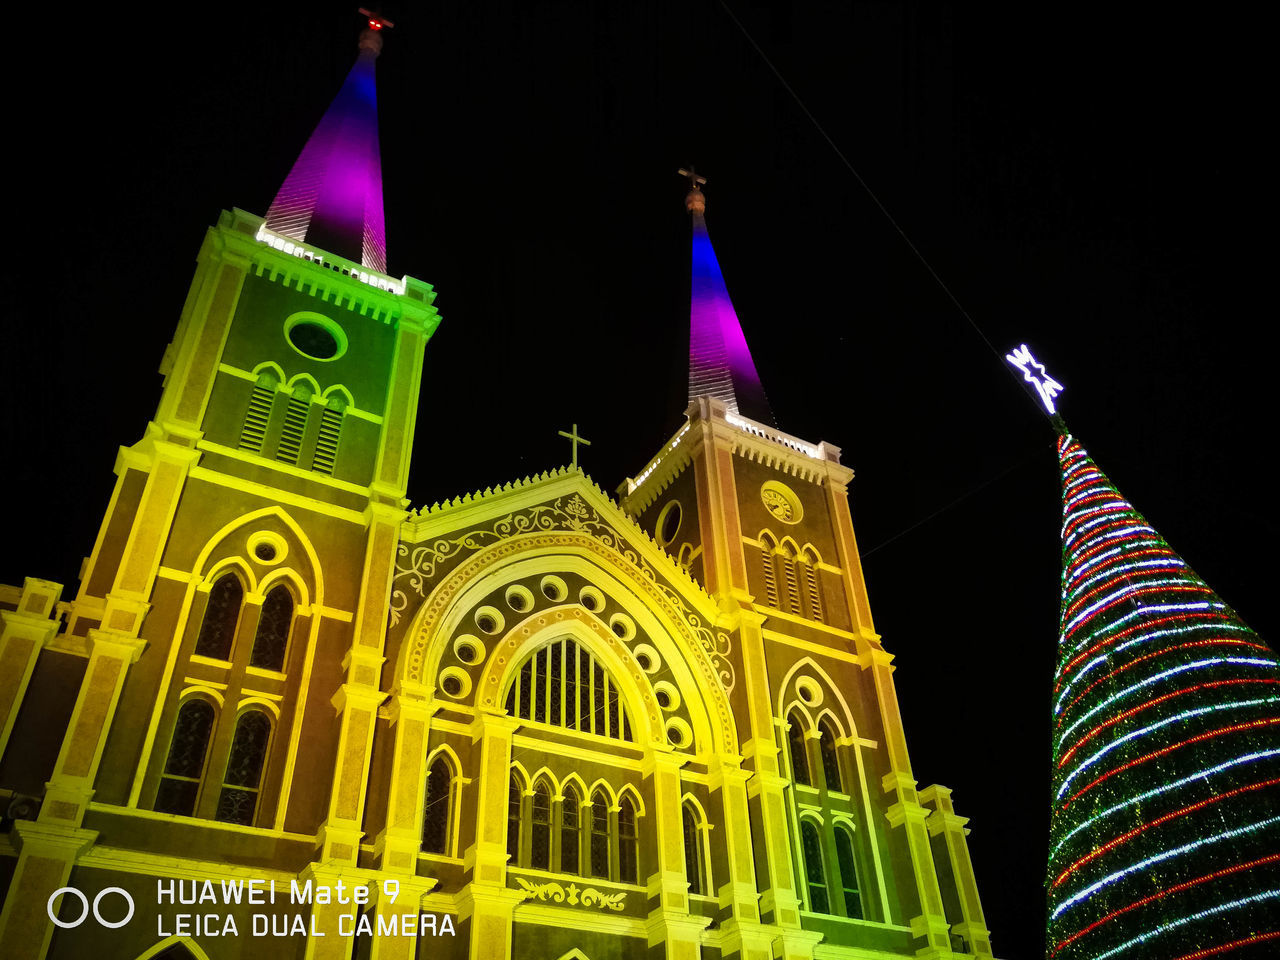 night, architecture, illuminated, building exterior, built structure, low angle view, tourism, place of worship, government, religion, travel destinations, multi colored, outdoors, spirituality, patriotism, dome, no people, sky, city, black background